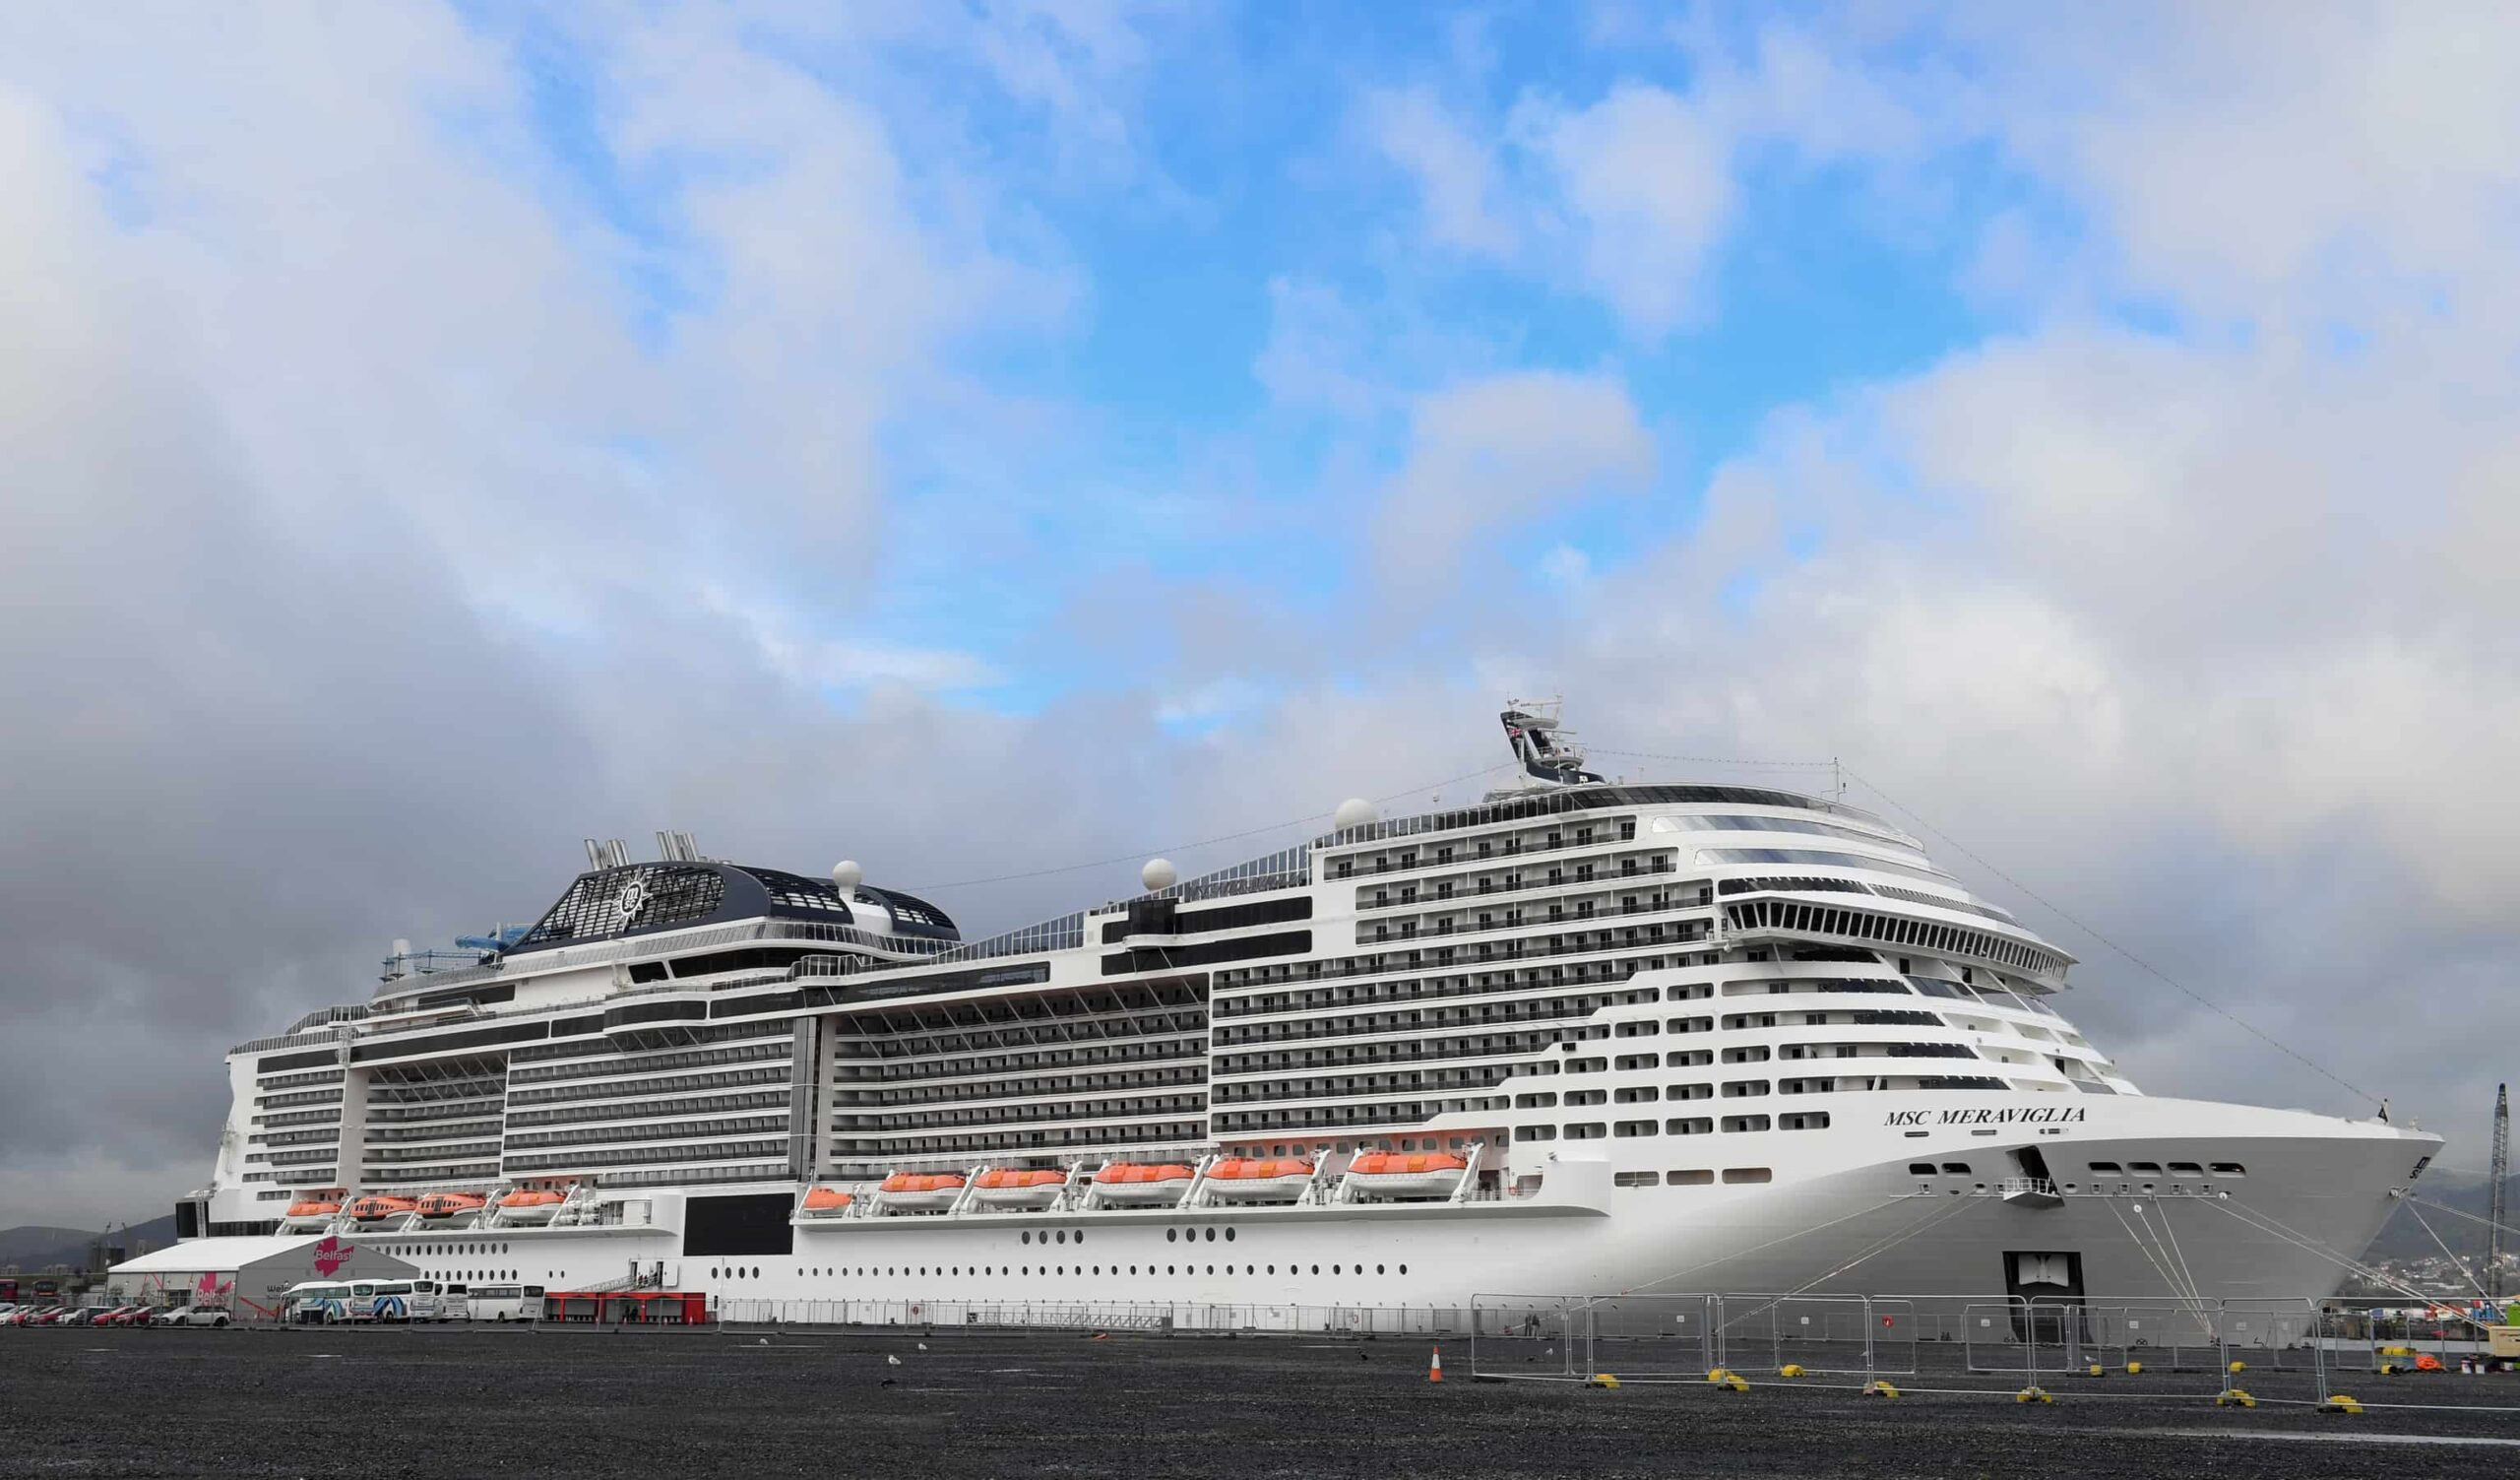 MSC Meraviglia, the largest ever cruise ship to visit Belfast, docking in Belfast Harbour for its maiden call. Alan Lewis- PhotopressBelfast.co.uk 26/9/2019 Photo By Justin Kernoghan.